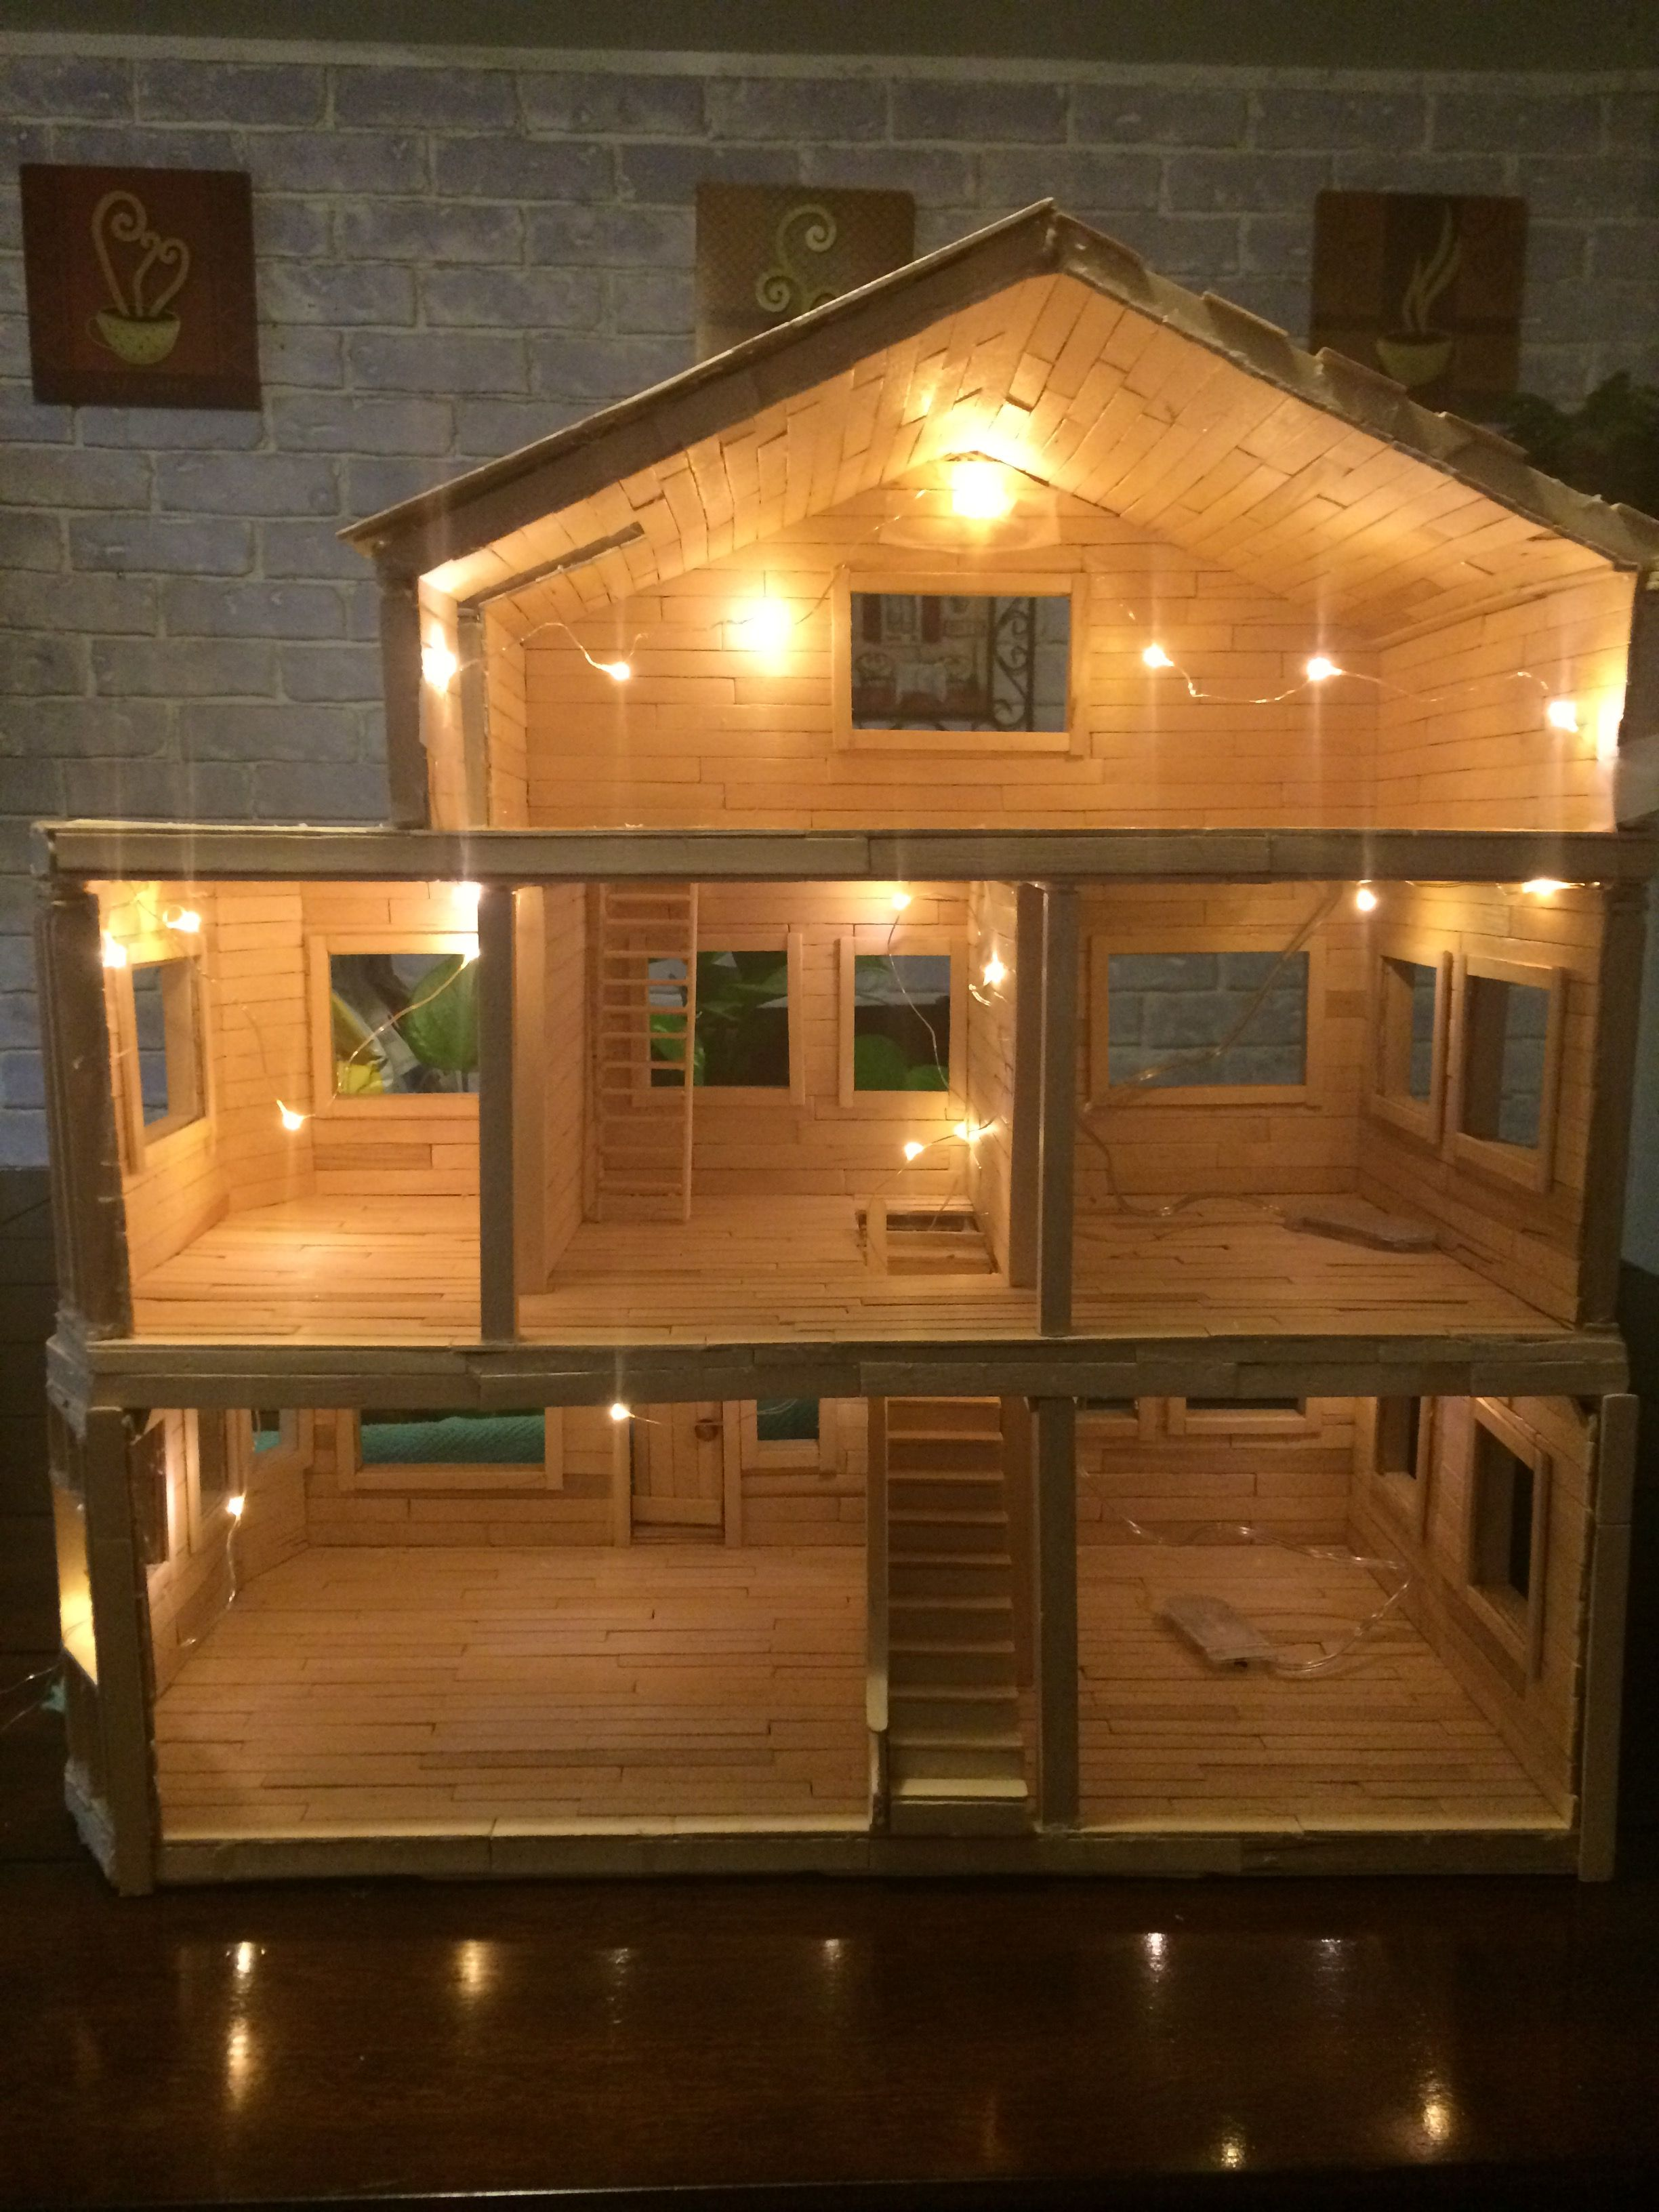 Dollhouse made entirely from Popsicle sticks | Dollhouse ...